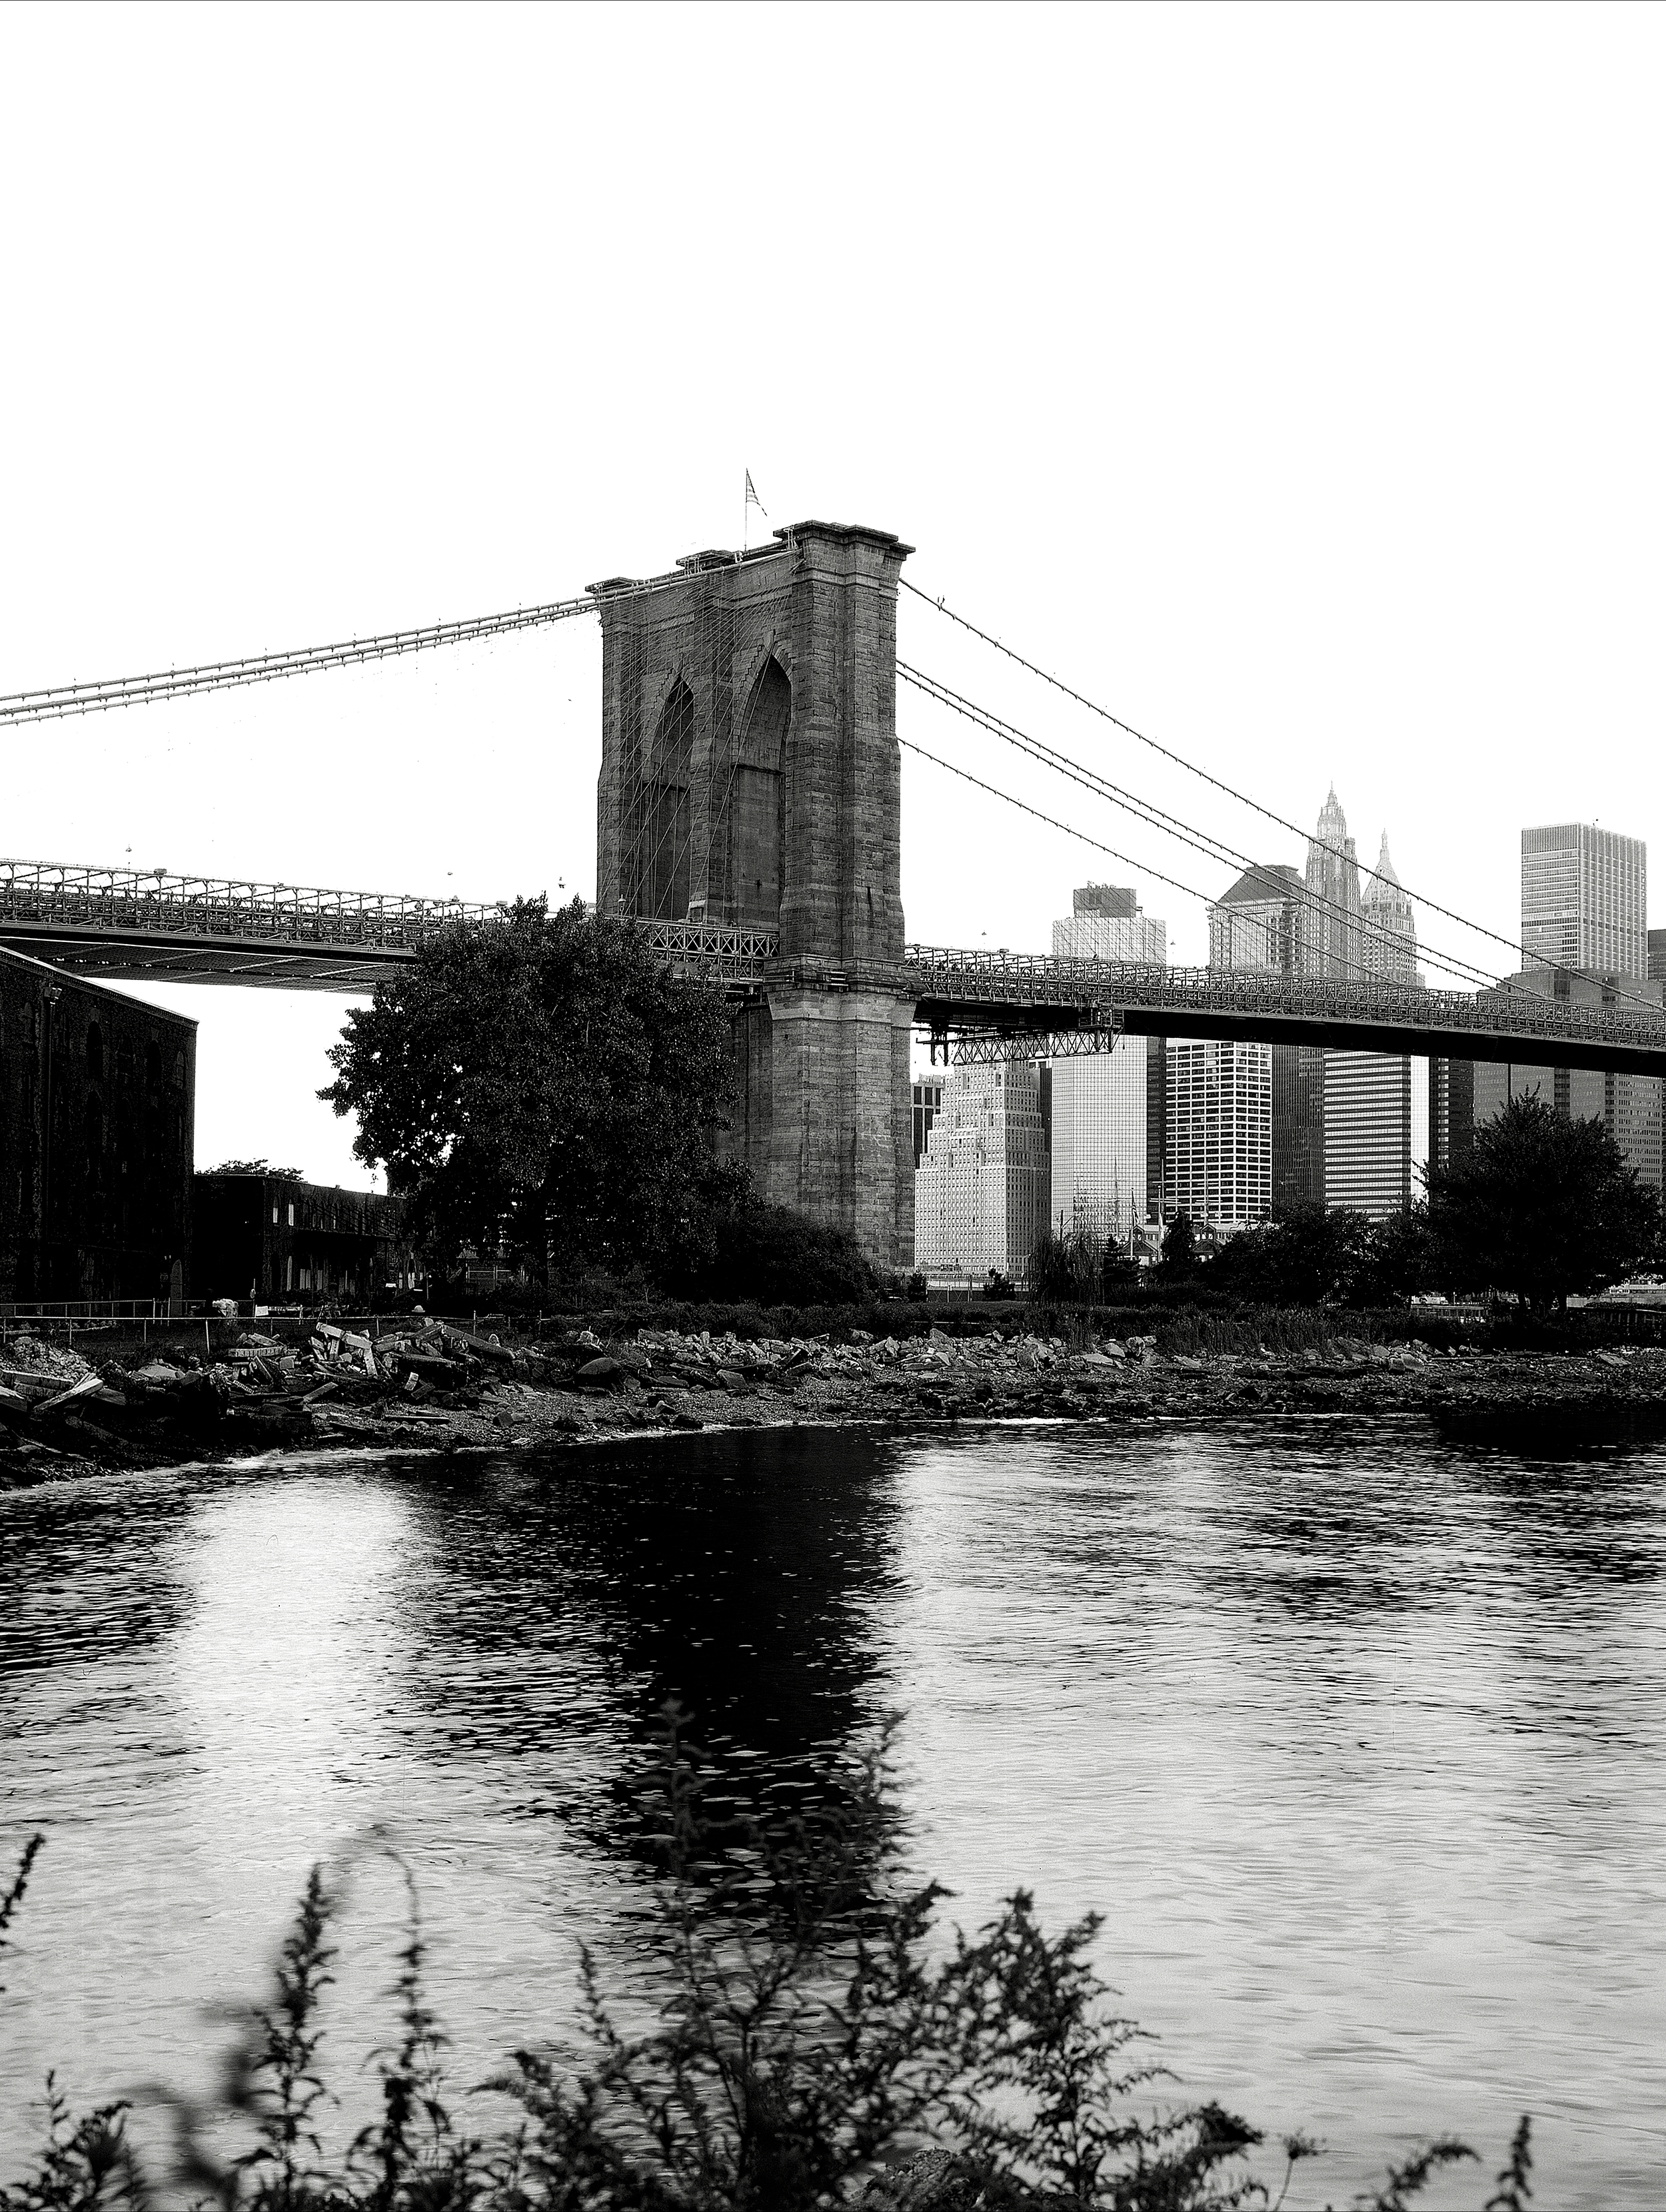 Brooklyn Bridge 2000.jpg